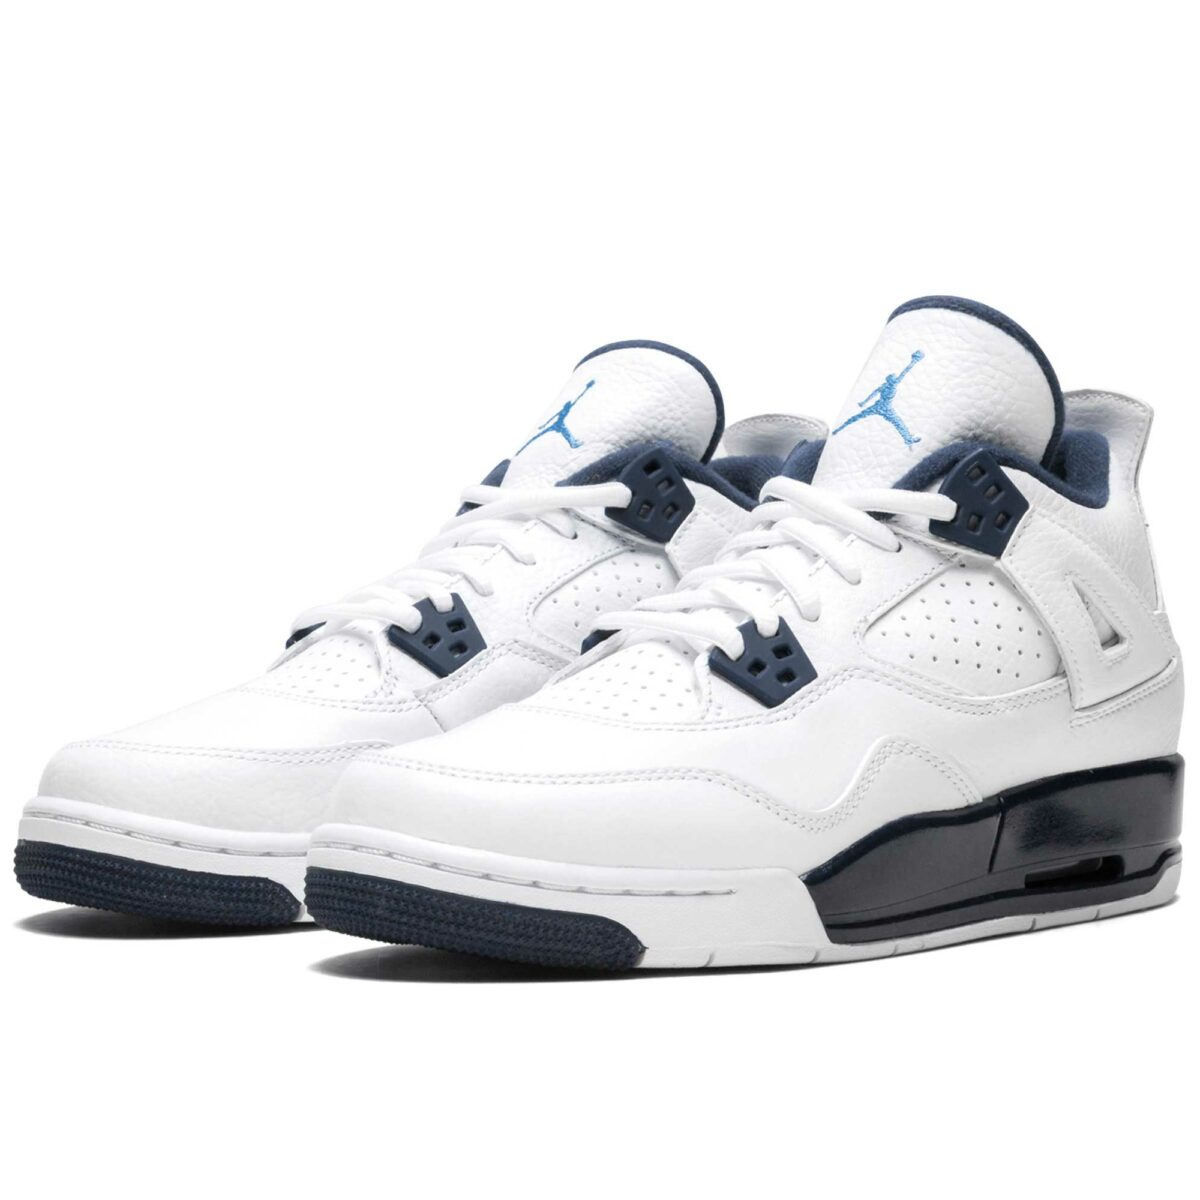 nike air jordan 4 retro bg legend blue 408452_107 купить